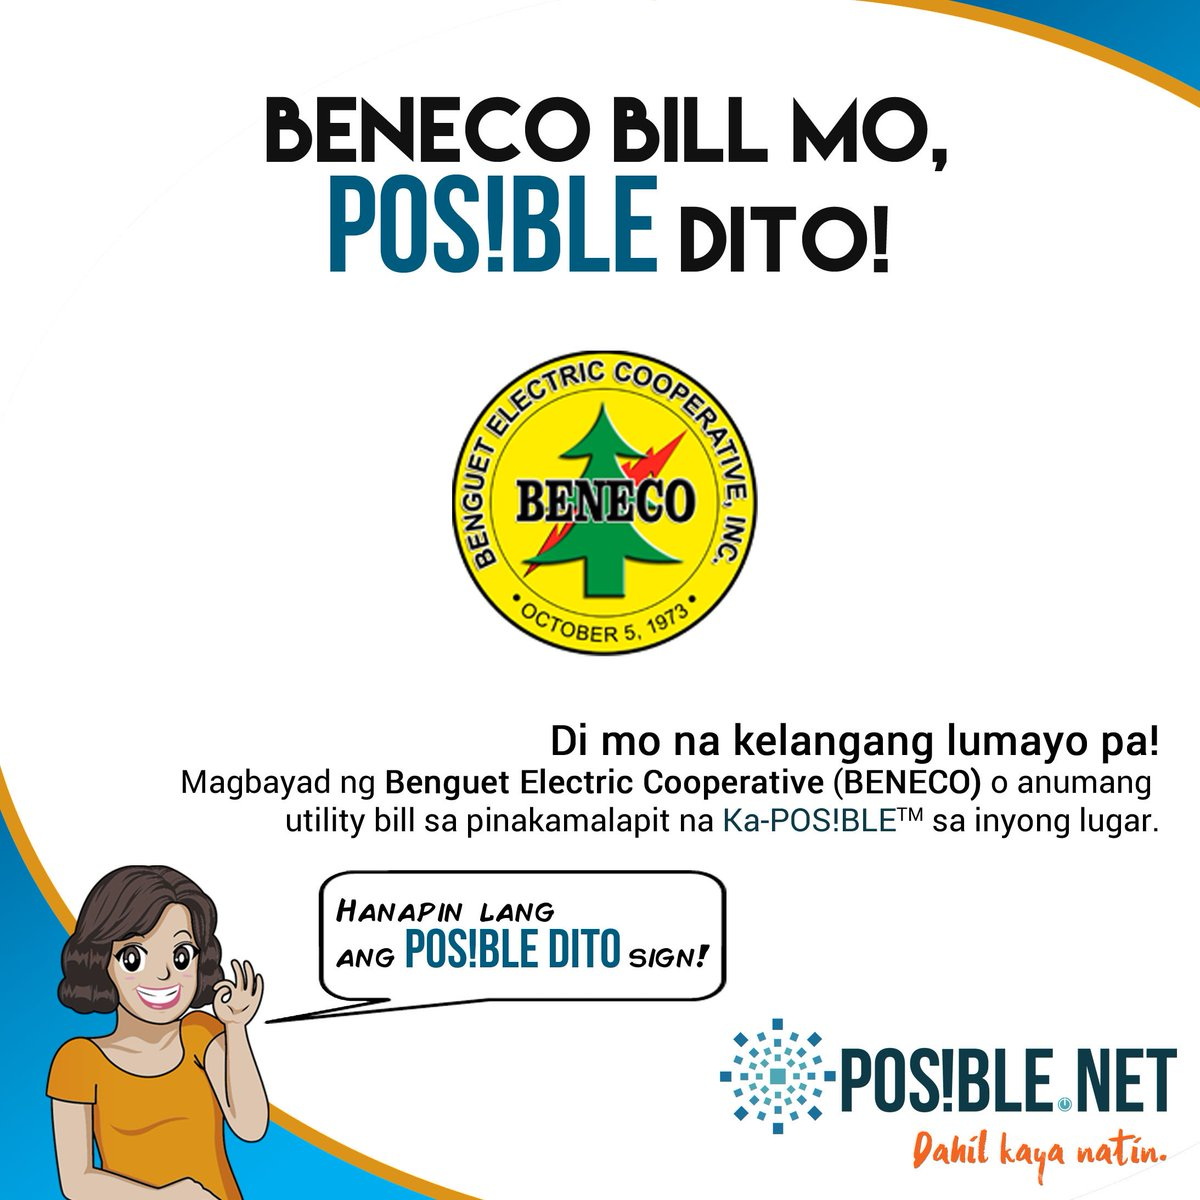 test Twitter Media - Di kelangan mamundok para magbayad sa BENECO! Punta na sa suking #KaPOSIBLE o hanapin ang #POSIBLEdito sign sa inyong lugar. It's so easy, di ba?  Haan mo en masapol umadayo! https://t.co/xl1fYA3AWo